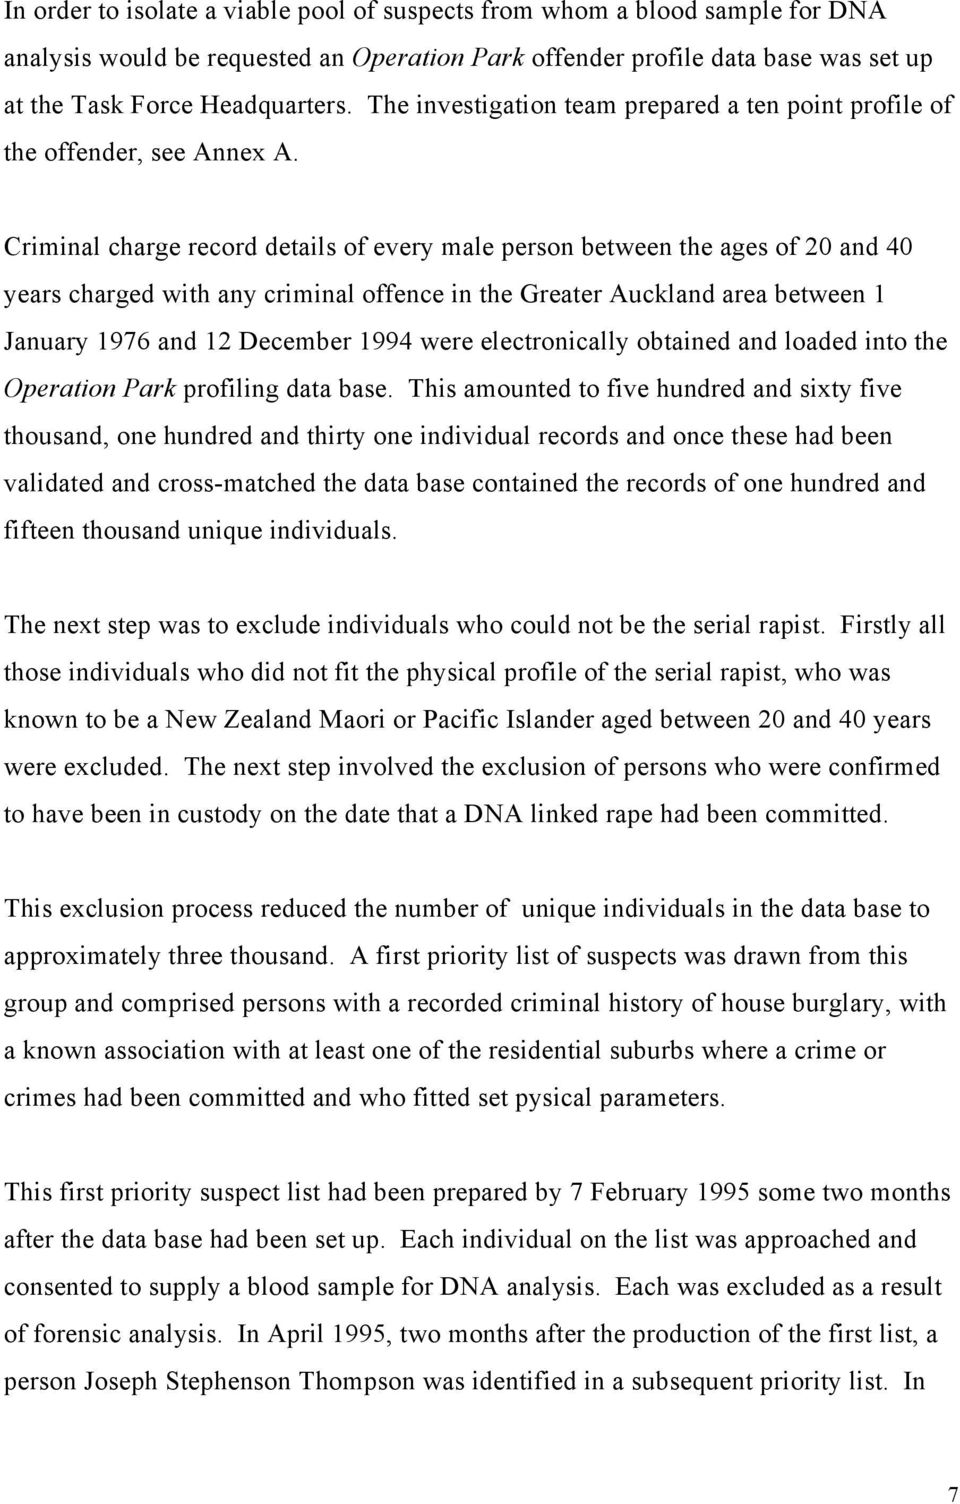 Criminal charge record details of every male person between the ages of 20 and 40 years charged with any criminal offence in the Greater Auckland area between 1 January 1976 and 12 December 1994 were